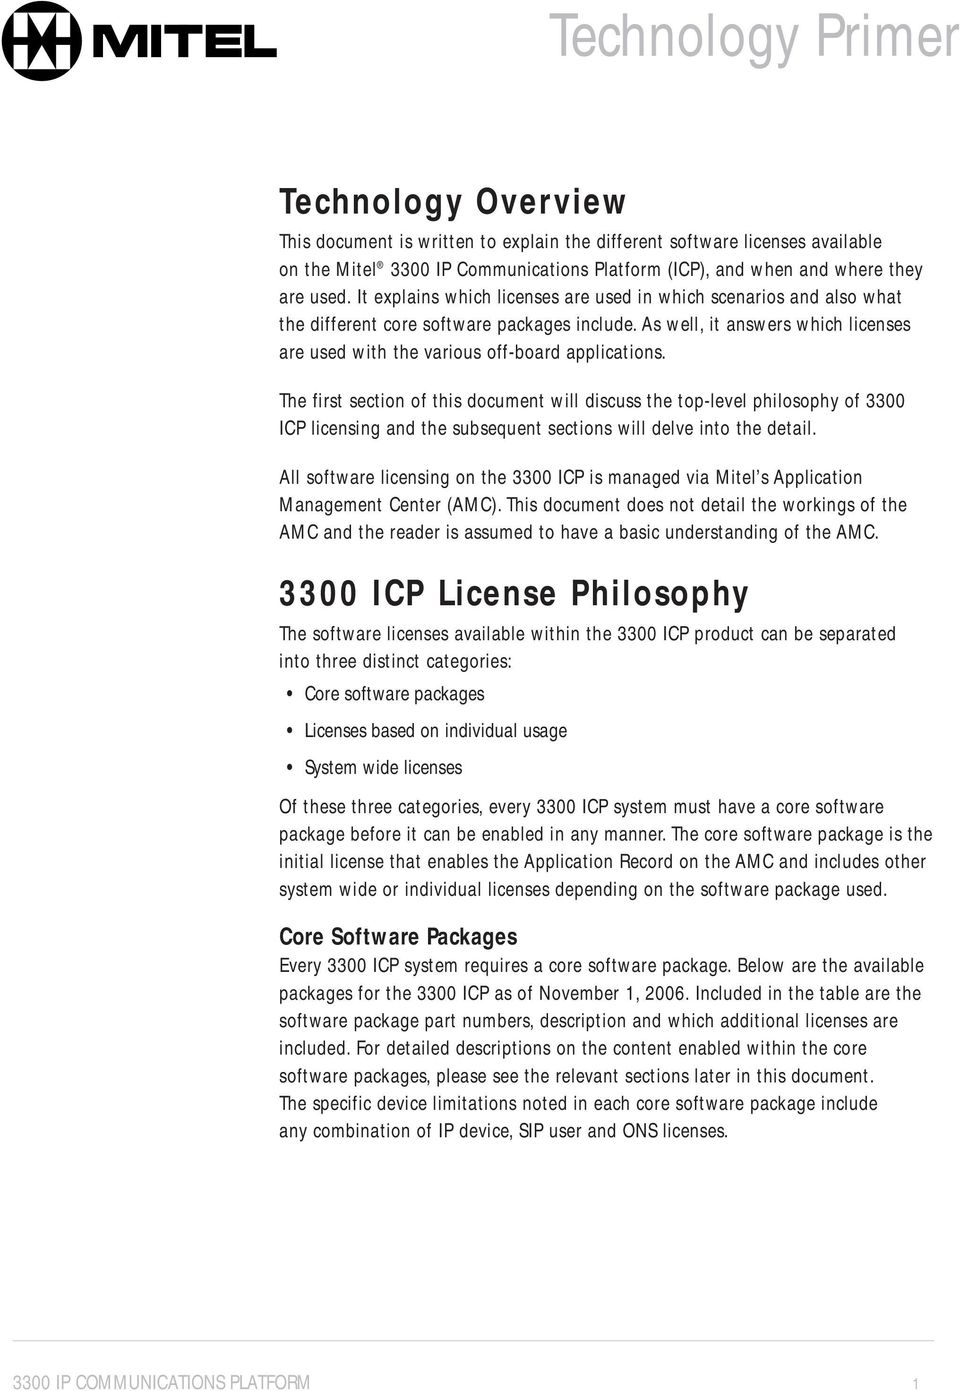 The first section of this document will discuss the top-level philosophy of 3300 ICP licensing and the subsequent sections will delve into the detail.